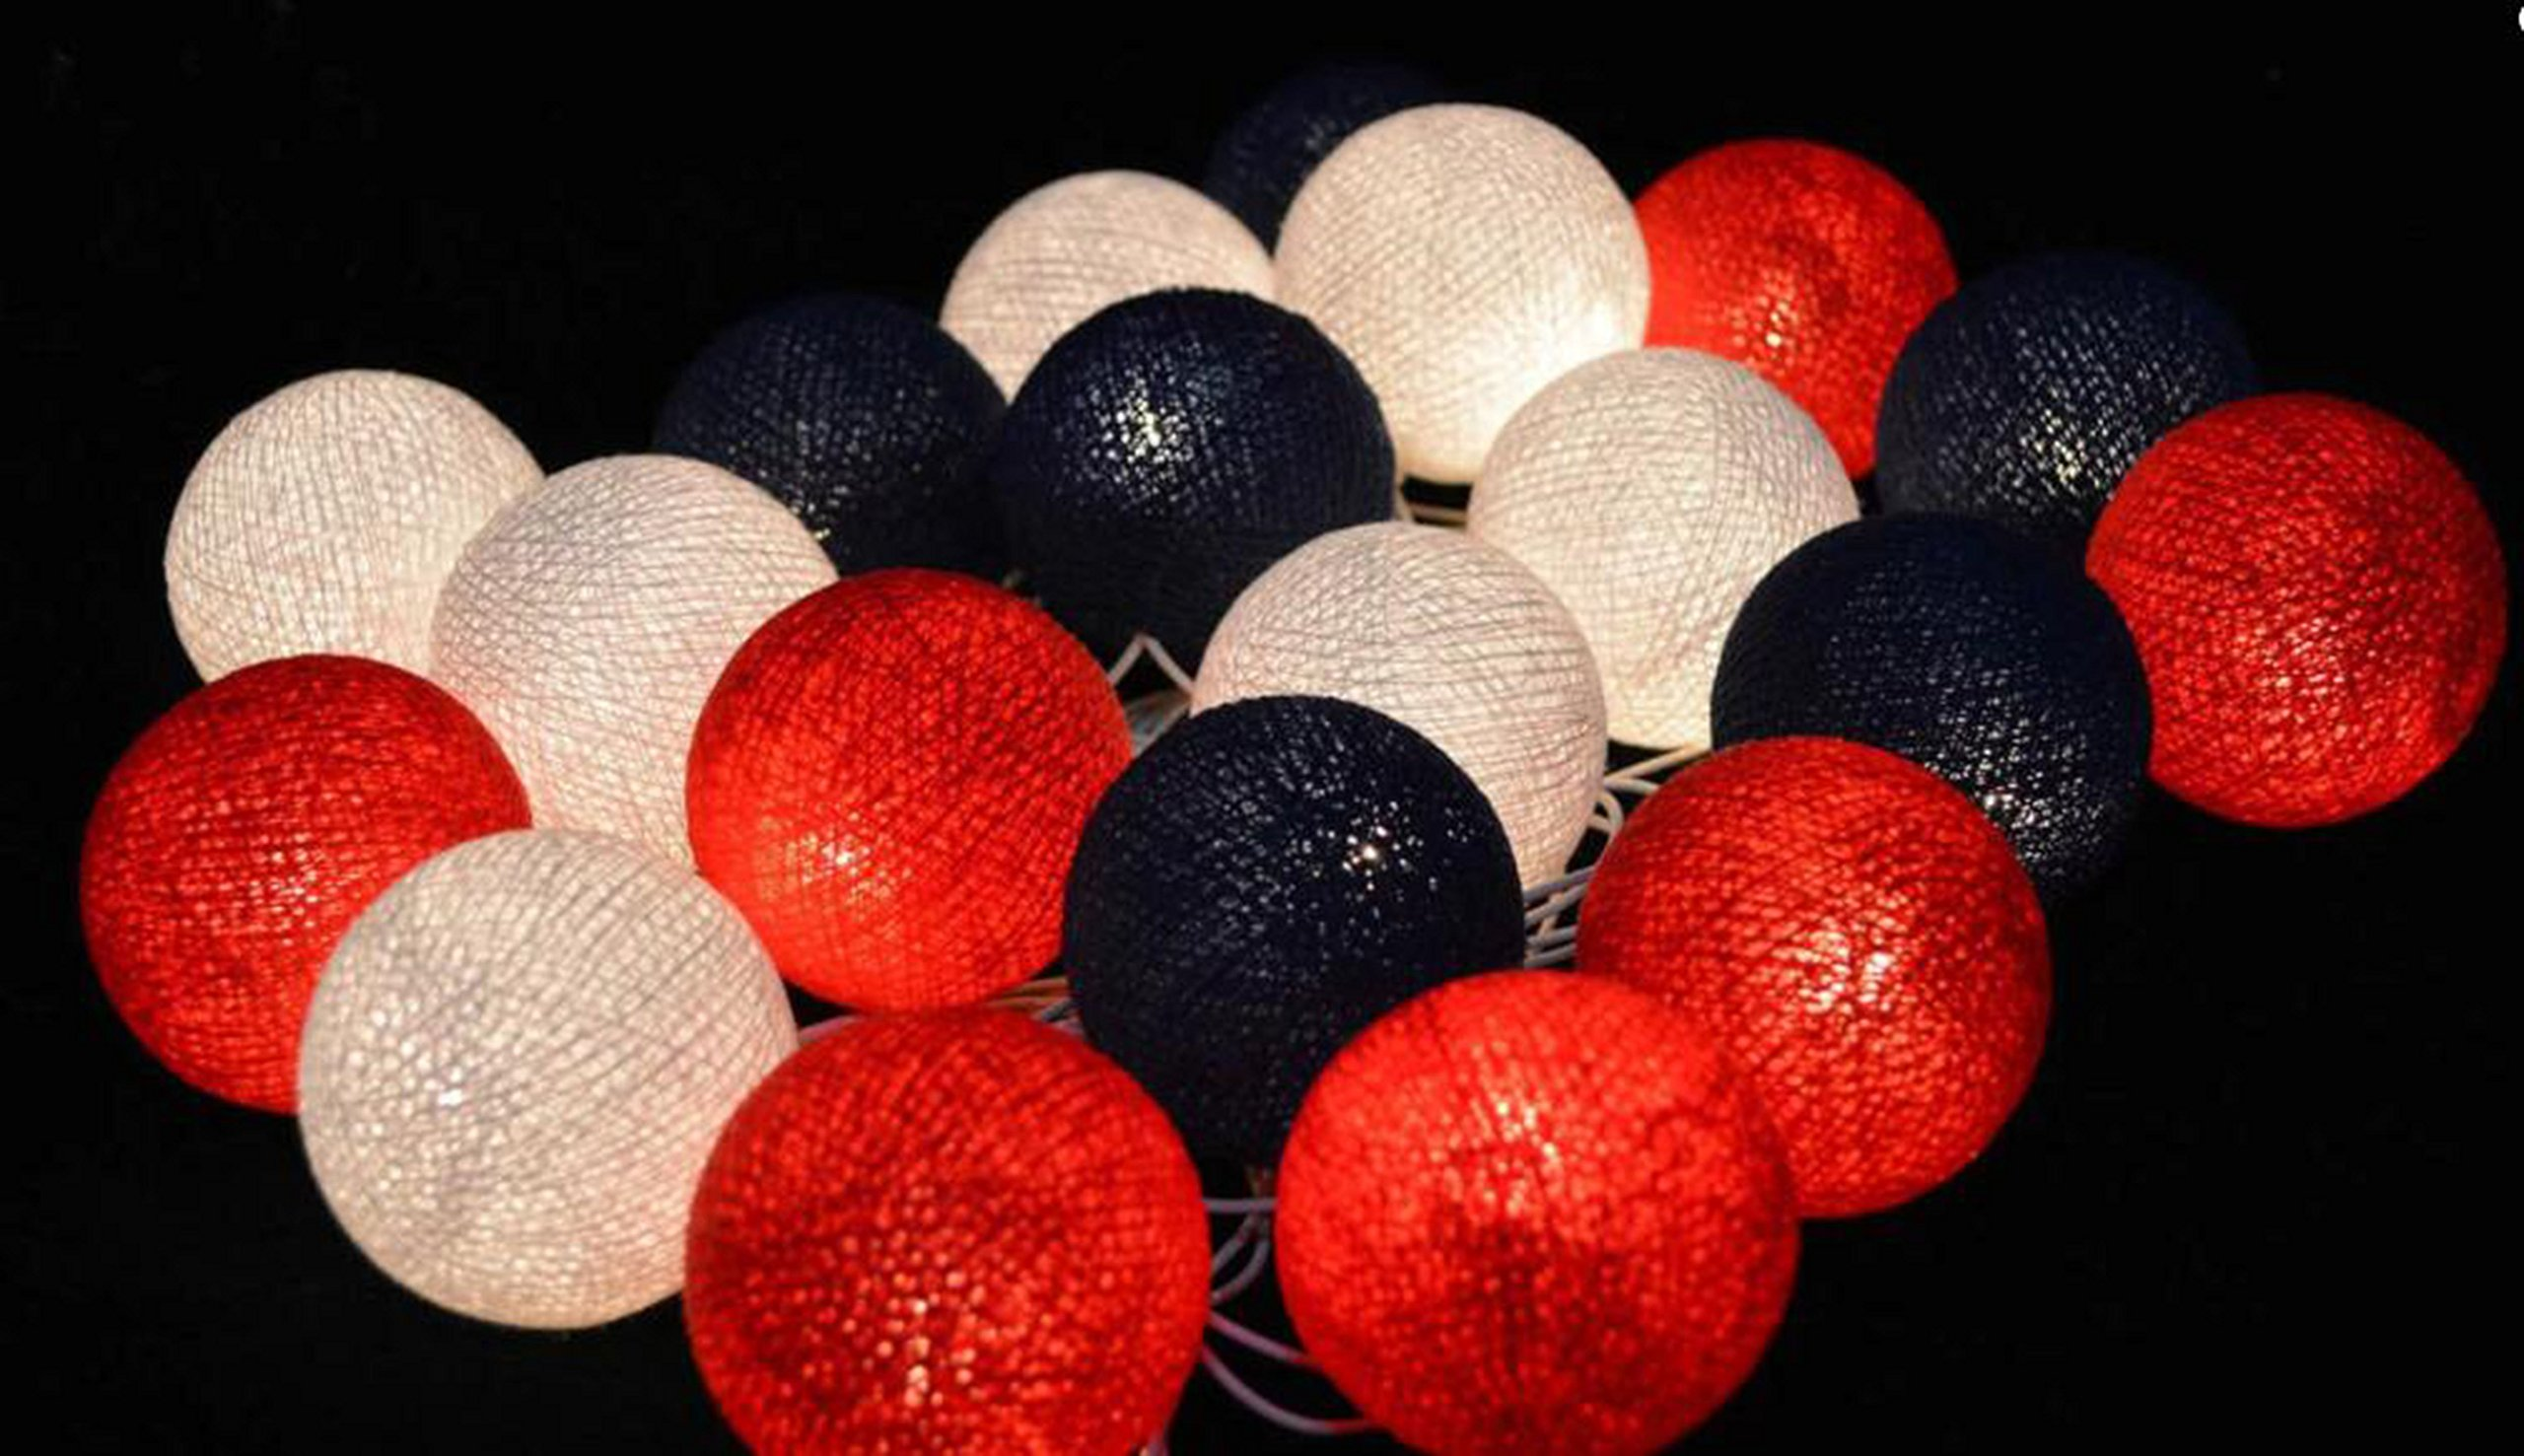 2.5m 20 LED Red Black White Cotton Balls String Lights Battery Operated Christmas LED Garland Party Decorative Lamp for Girl Birthday Party Baby Shower Decoration Holiday Party Kids Room Decoration